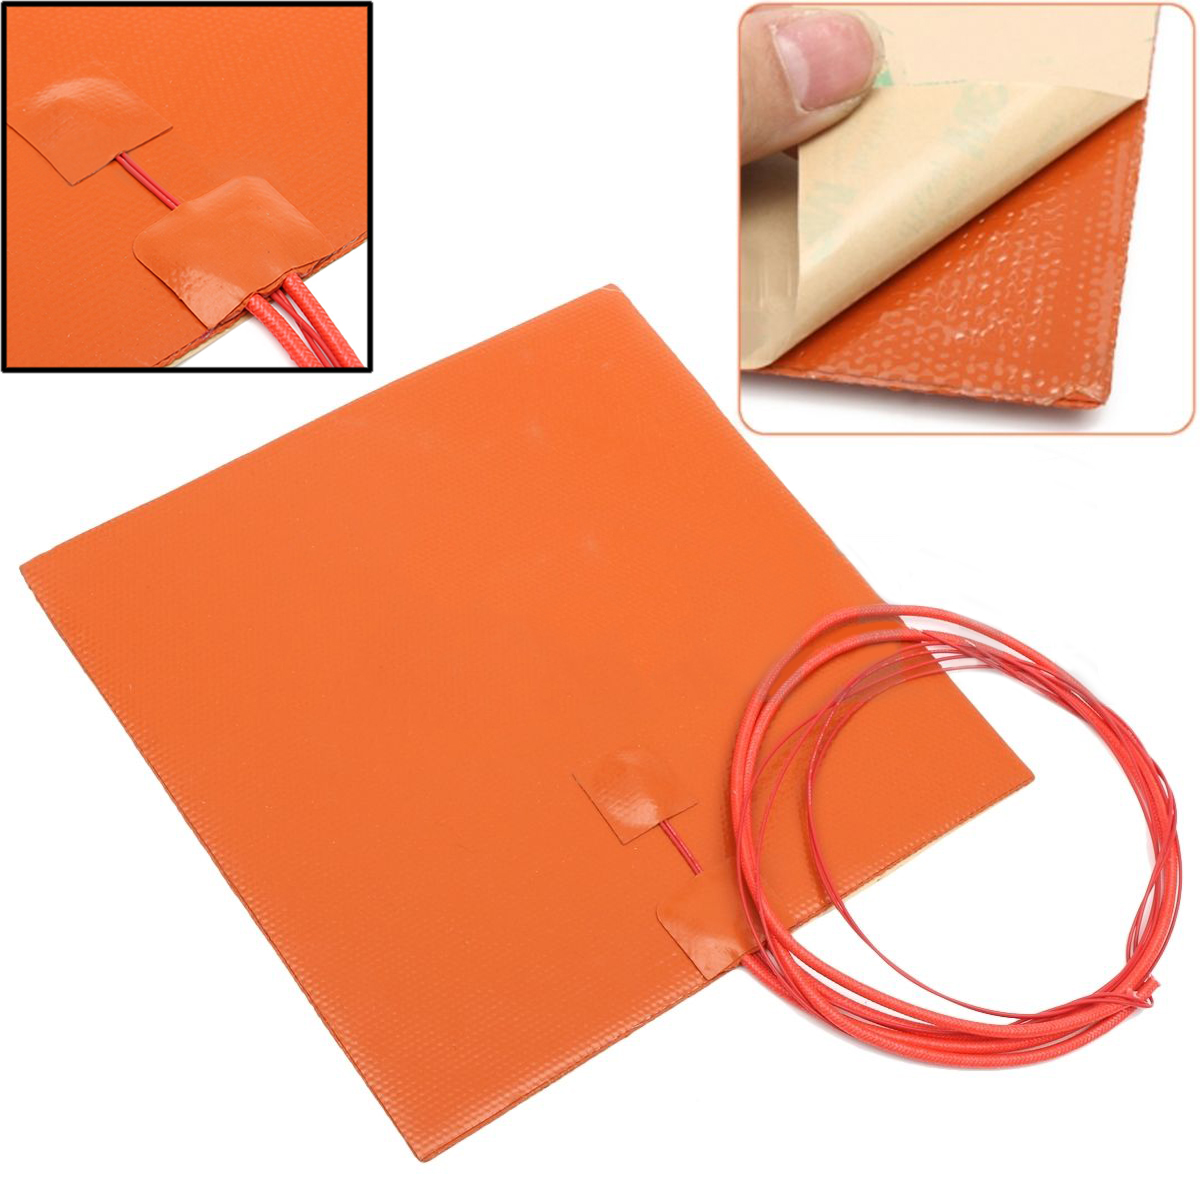 Tool accessories200W 12V 200*200mm Silicone Heater Pad For 3D Printer Heated Bed Heating Mat  accessories